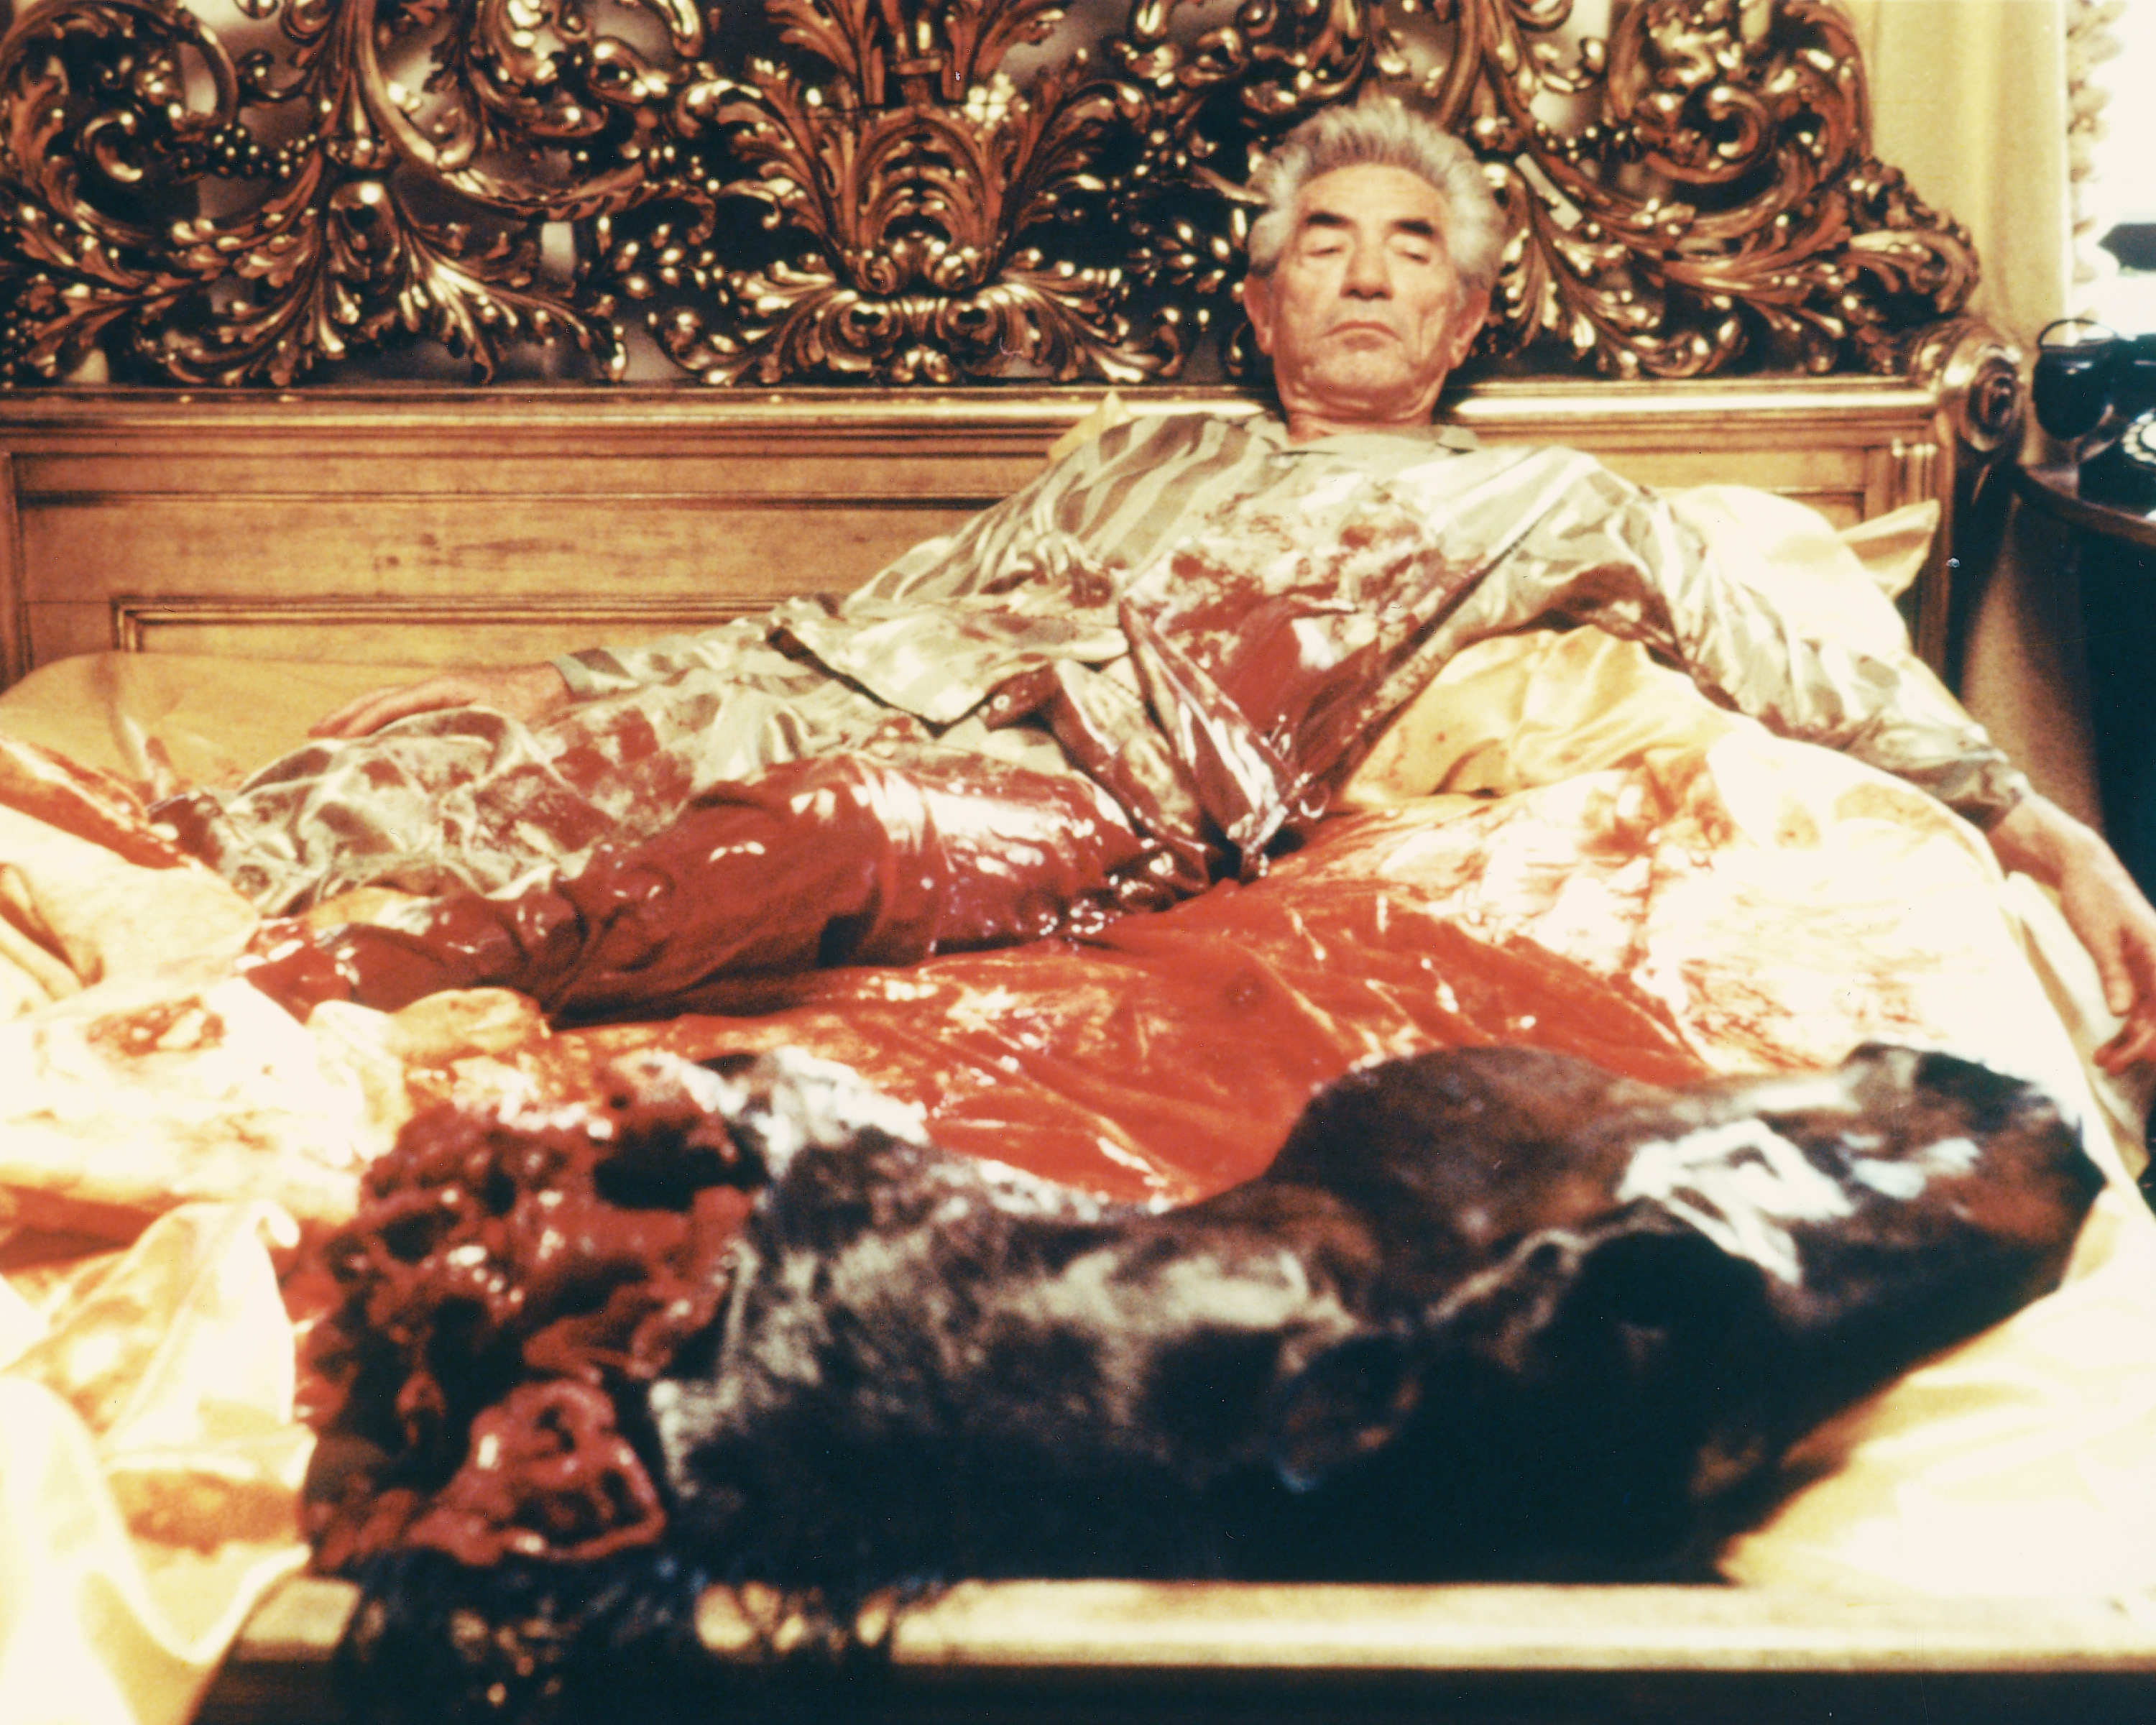 John Marley (1907-1984), US actor, wearing striped pyjamas in bed, with blood-stained bedclothes and the severed head of his horse at the foot of the bed in a publicity still issued for the film, 'The Godfather', 1972. The mafia drama, directed by Francis Ford Coppola, starred Marley as 'Jack Woltz'. (Photo by Silver Screen Collection/Getty Images)